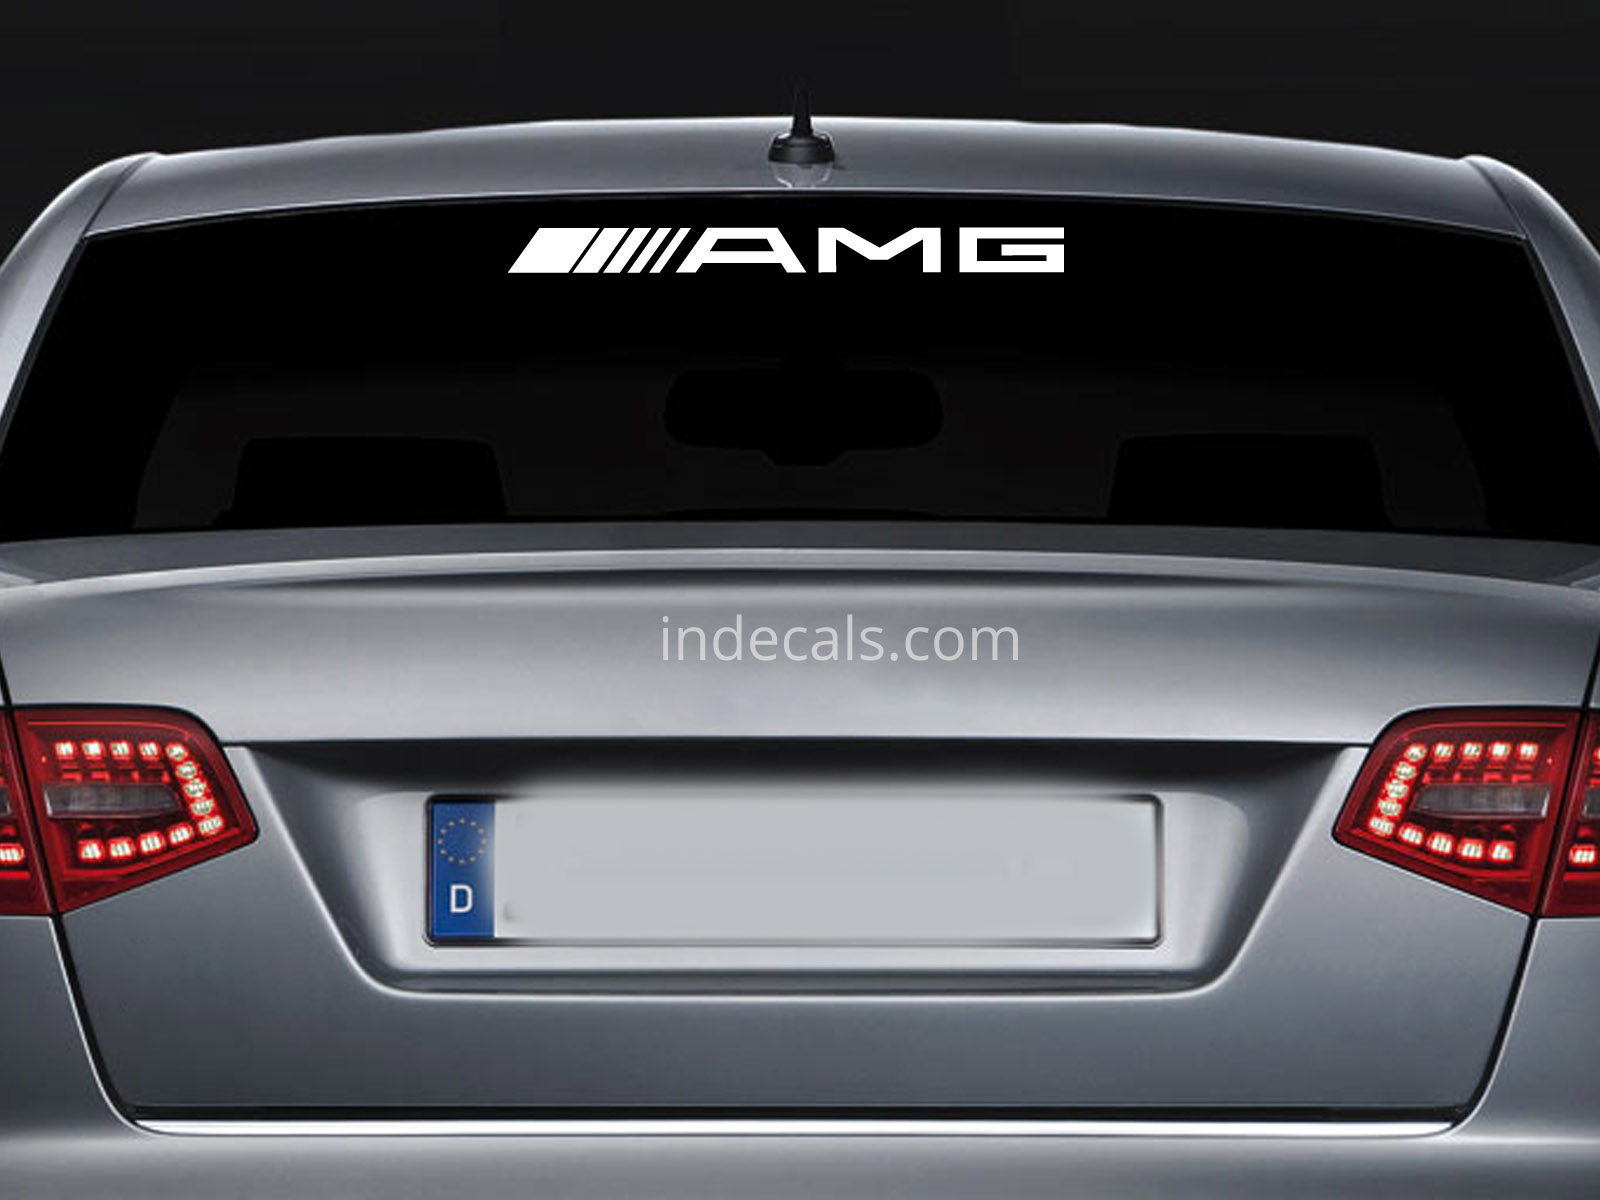 1 x AMG Sticker for Windshield or Back Window - White